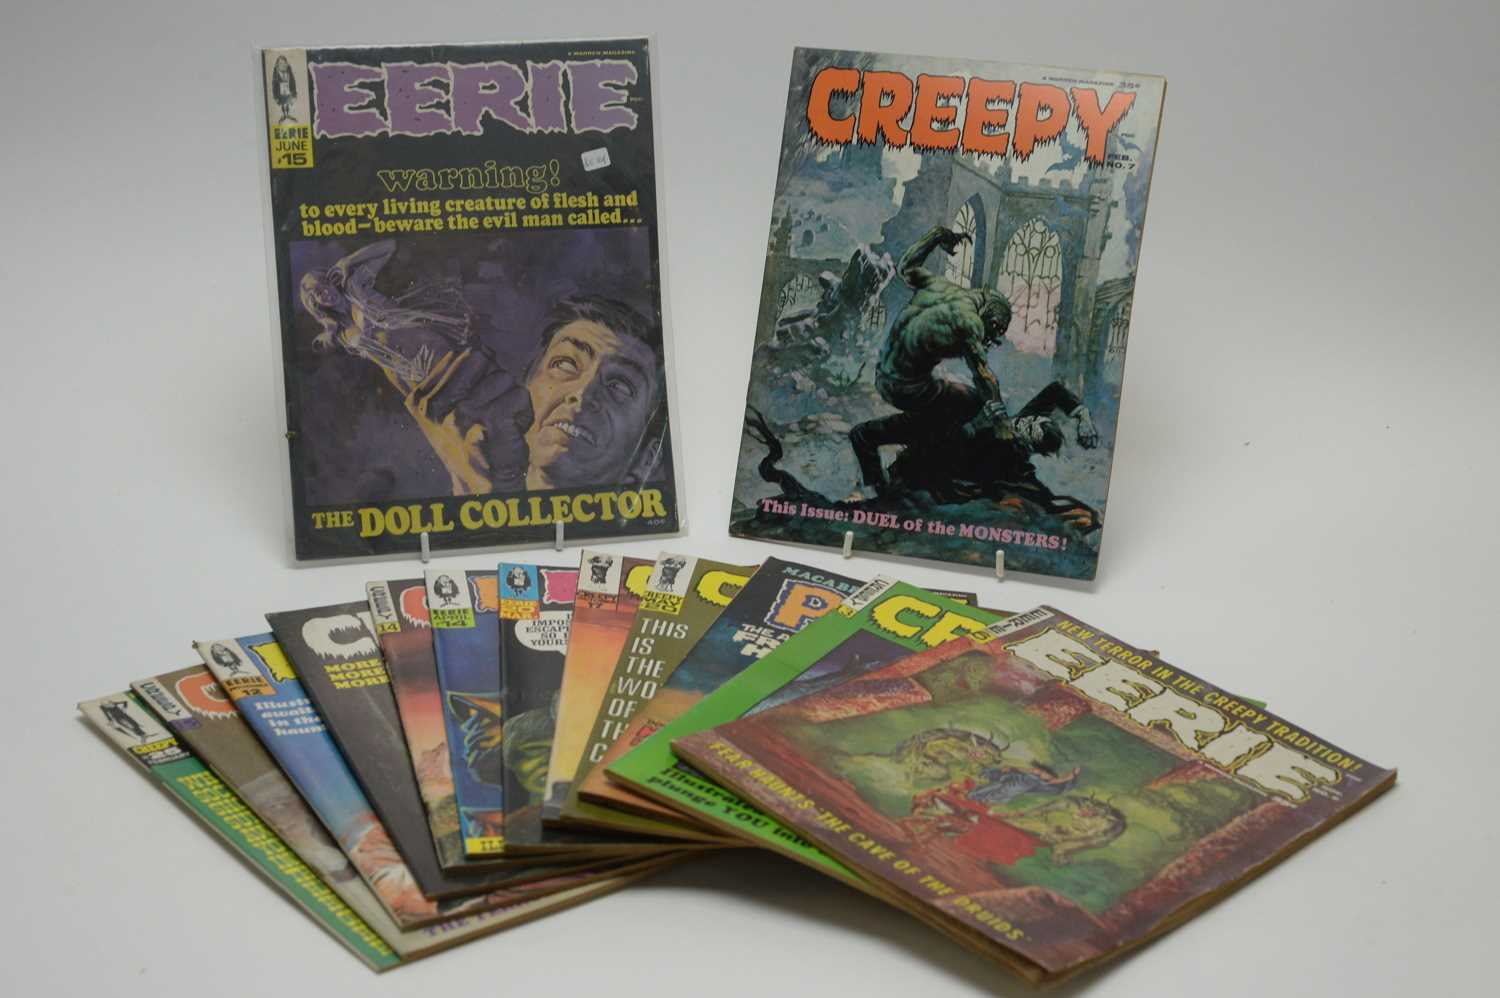 Lot 5 - Eerie, Creepy and Psycho magazines.